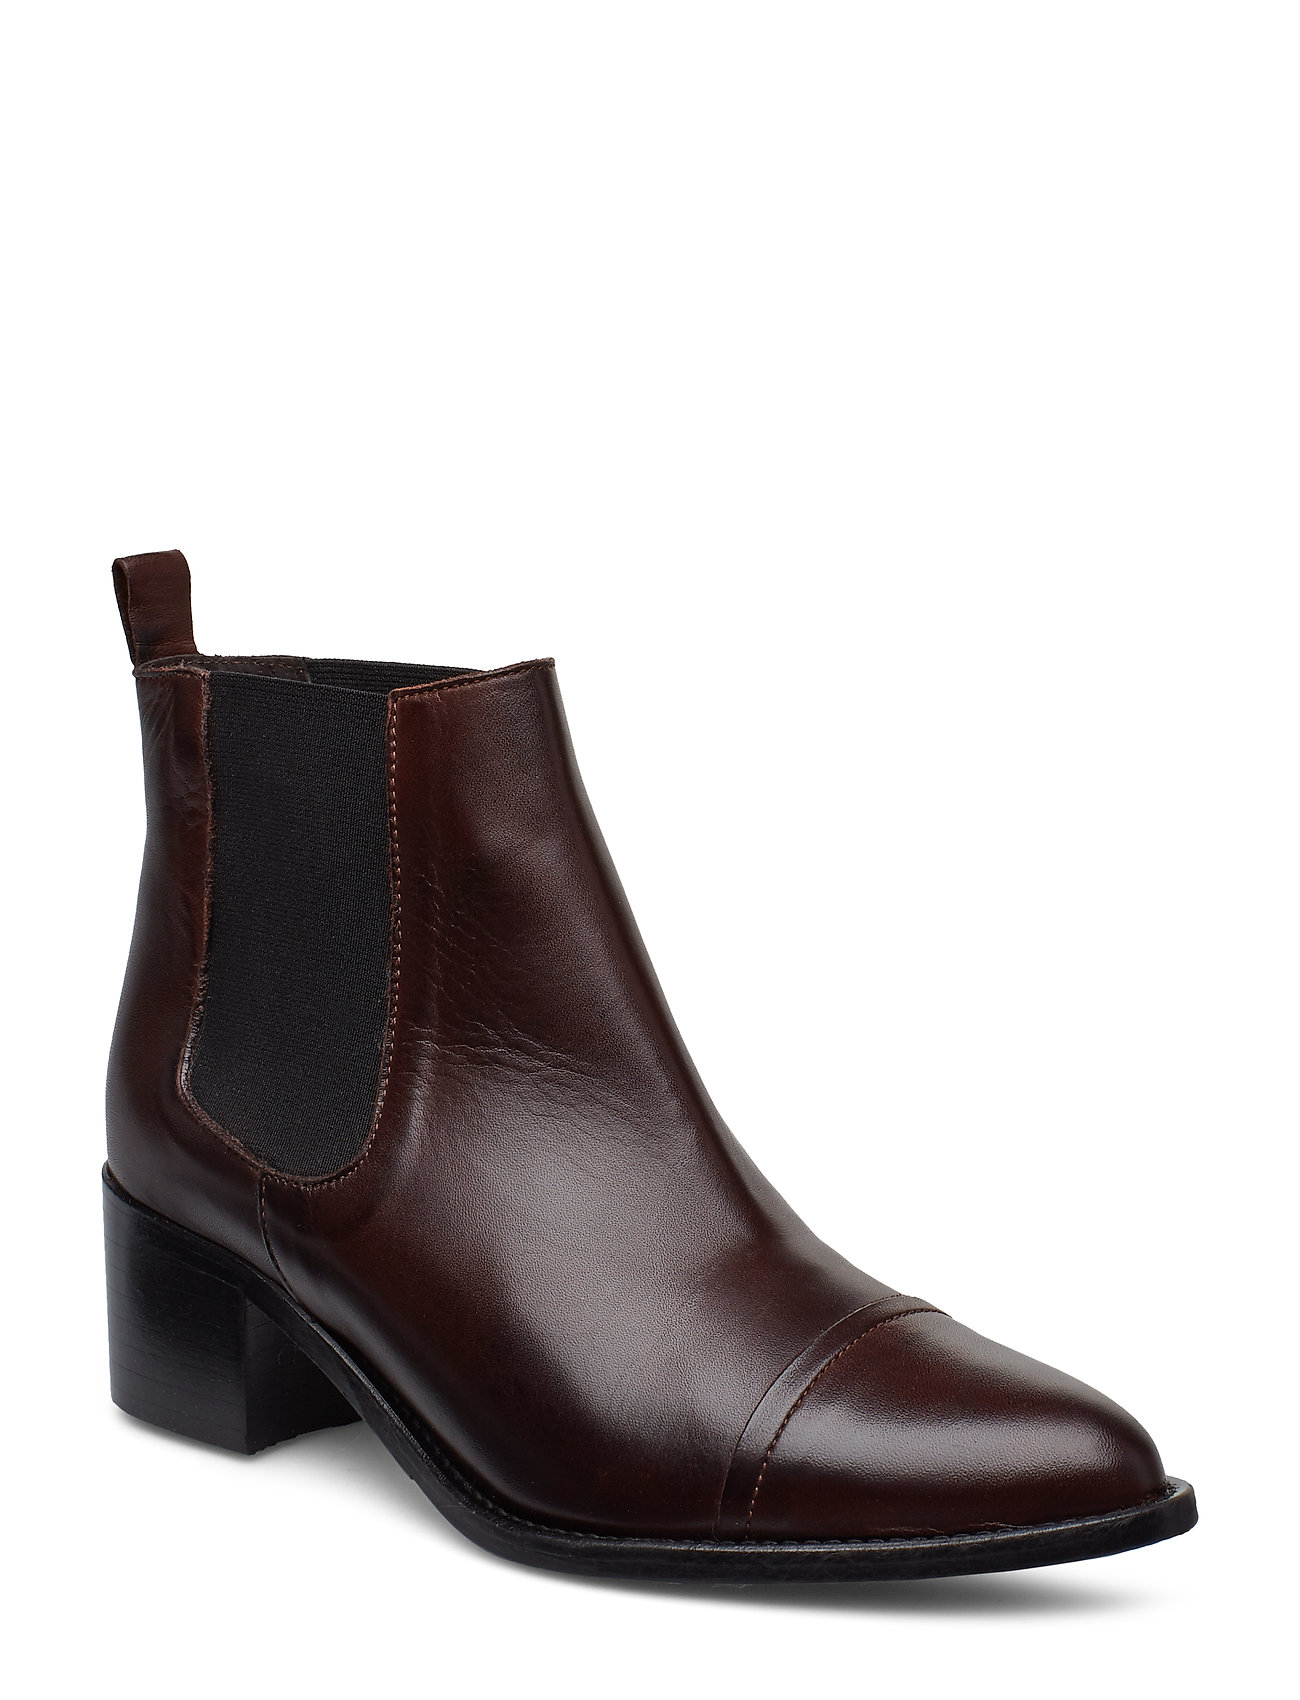 Image of Biacarol Dress Chelsea Shoes Boots Ankle Boots Ankle Boot - Heel Brun Bianco (3416435631)